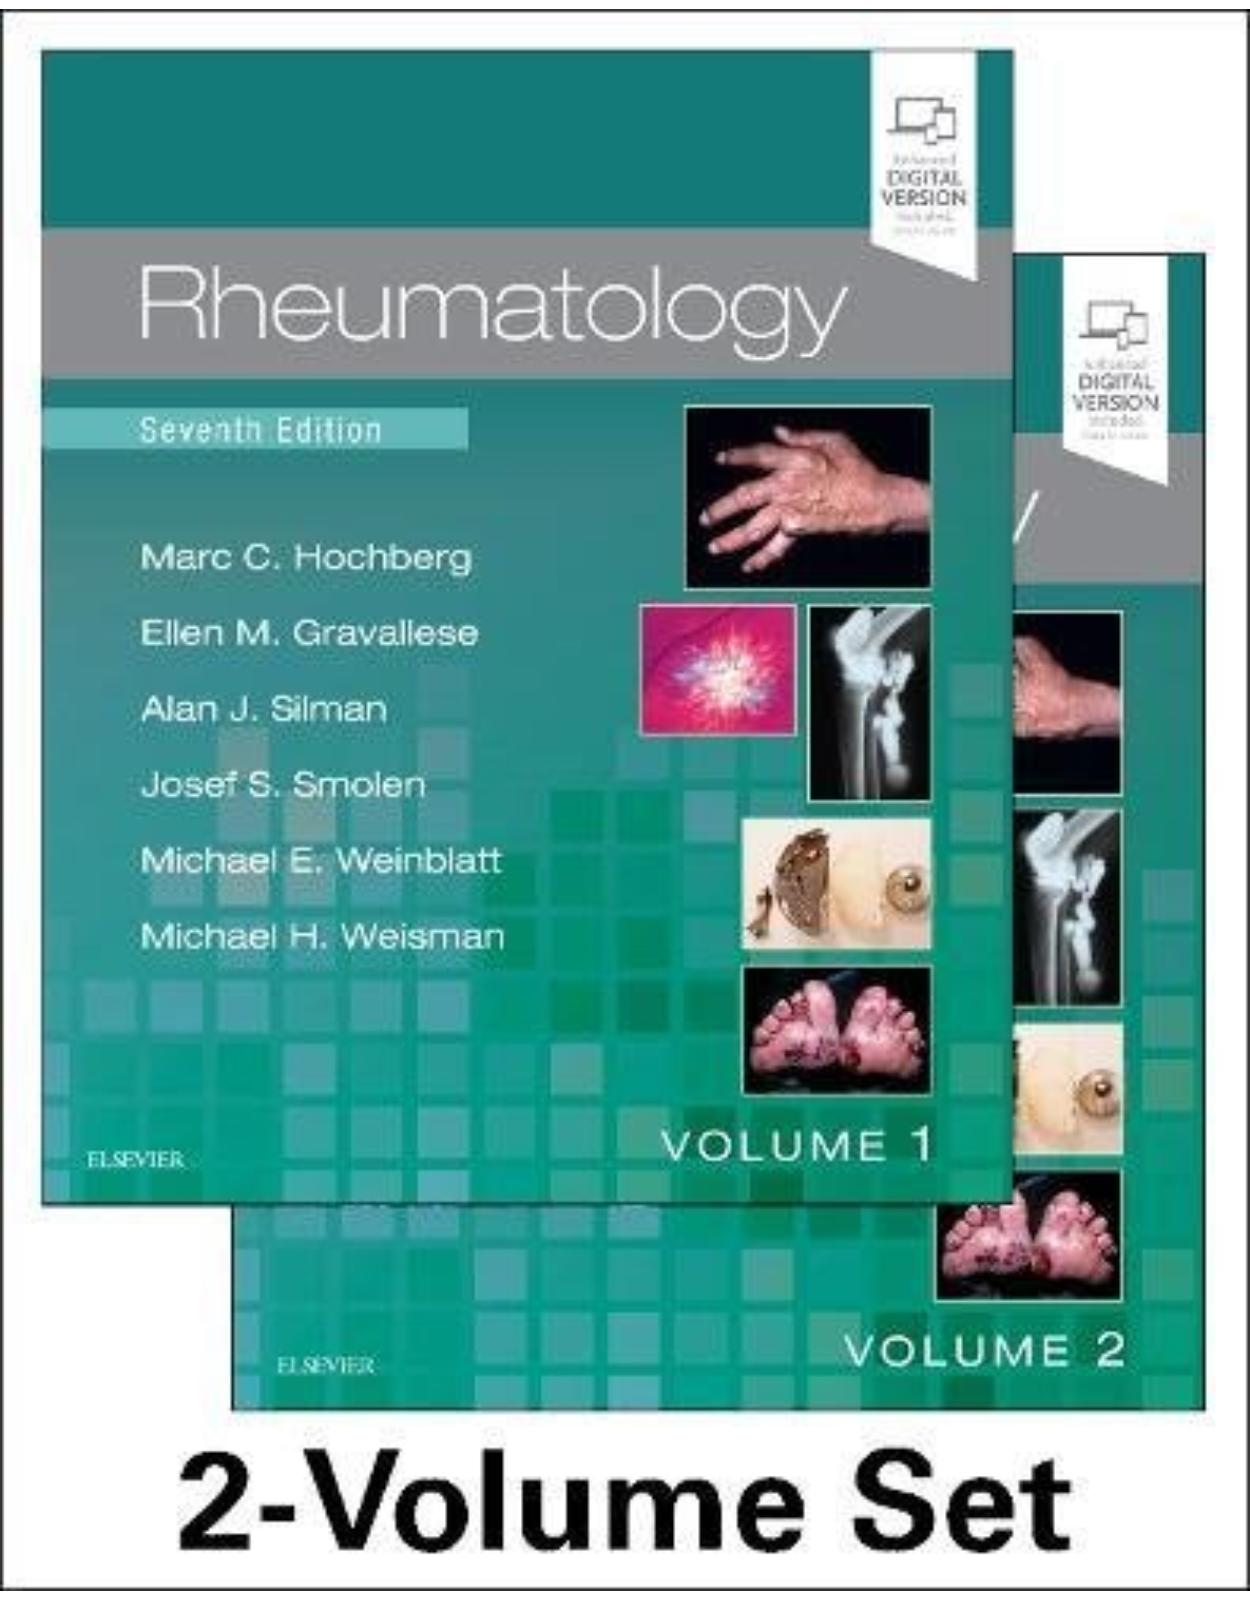 Rheumatology, 2-Volume Set, 7th Edition